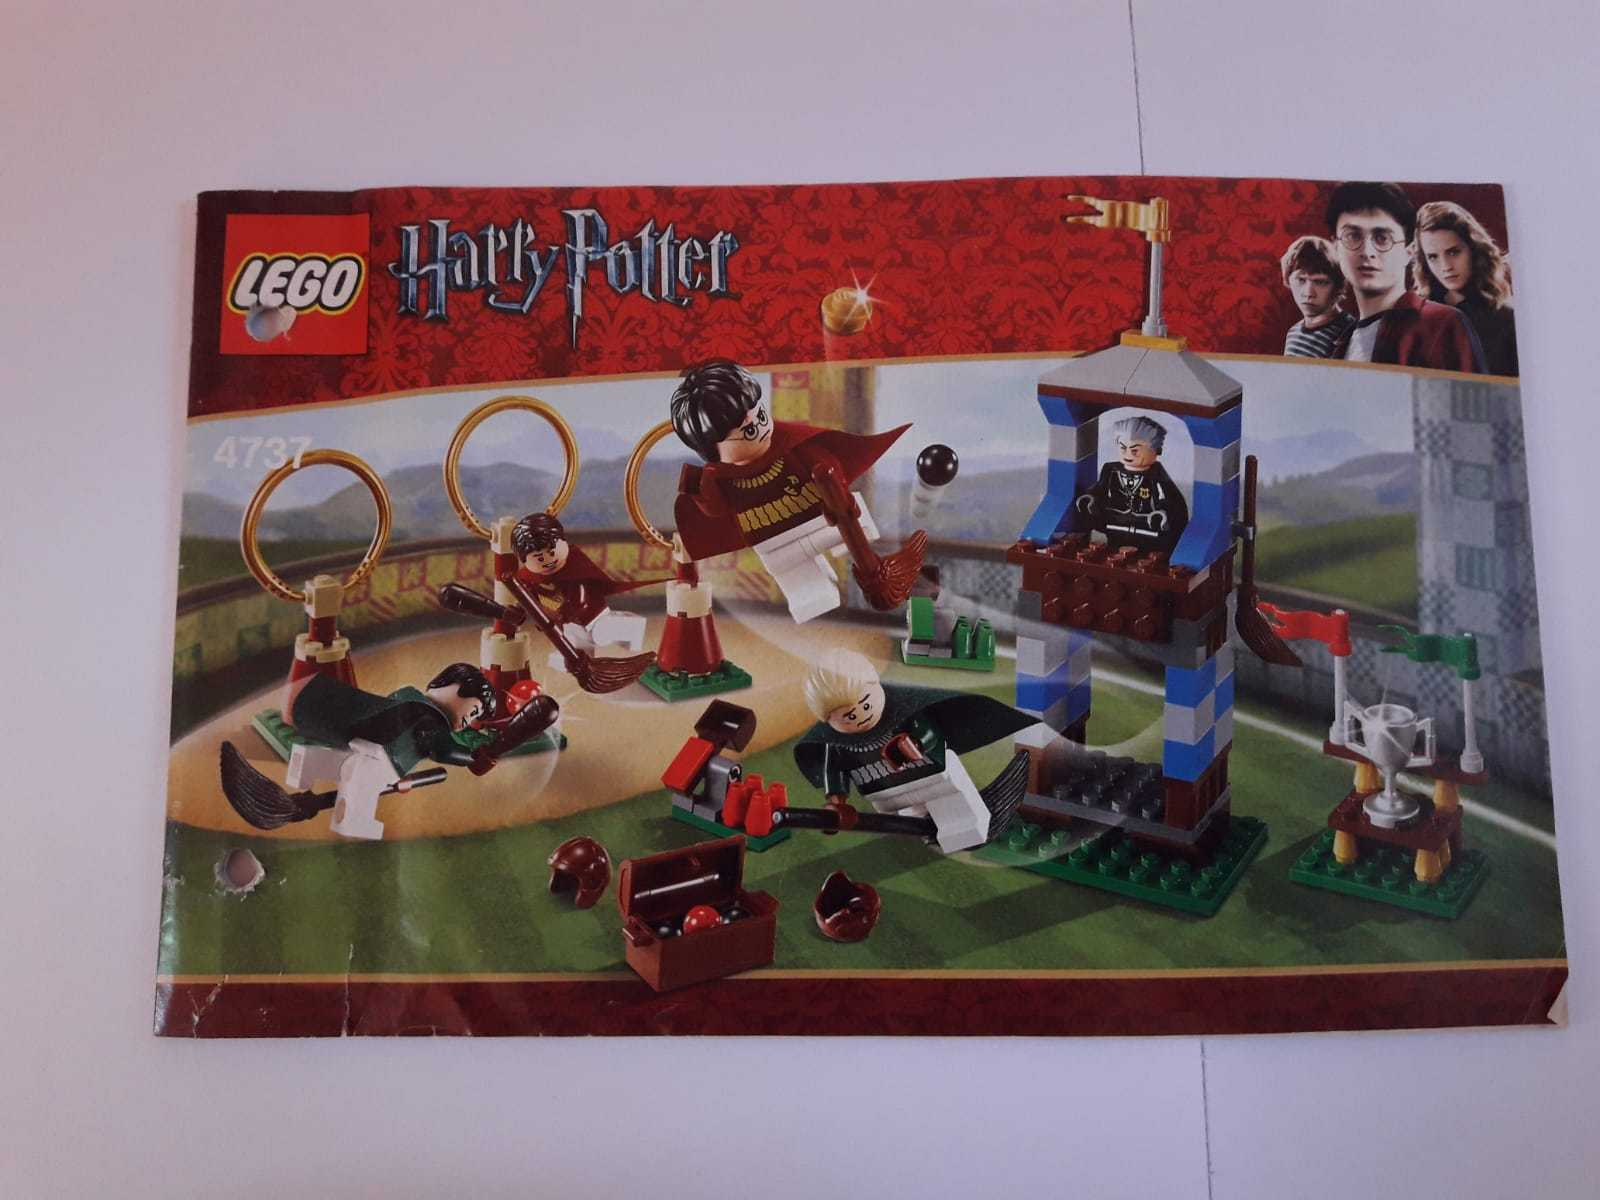 Lego 4737 4737 4737 Harry Potter quidditch Turnier afa75f